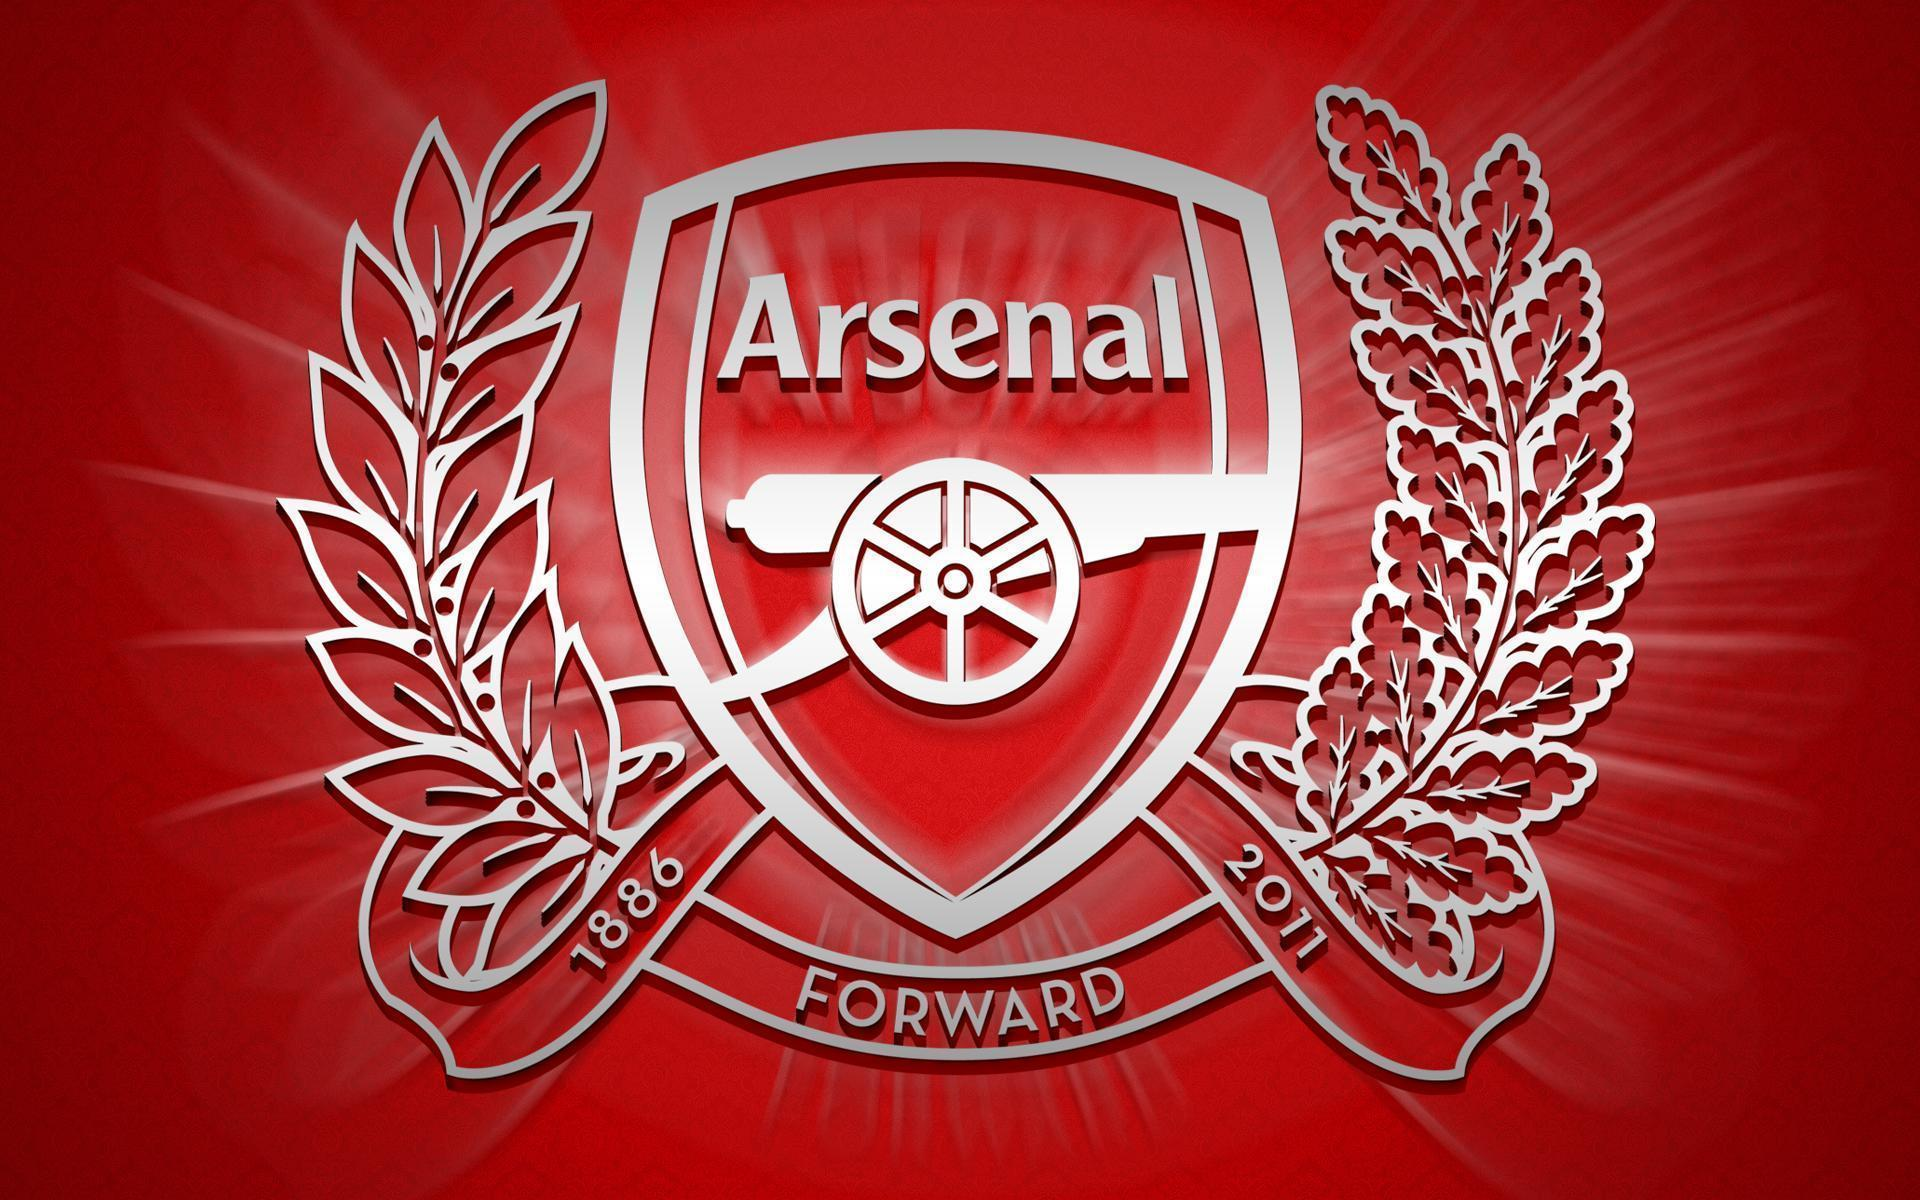 Arsenal Wallpapers - Full HD wallpaper search - page 5